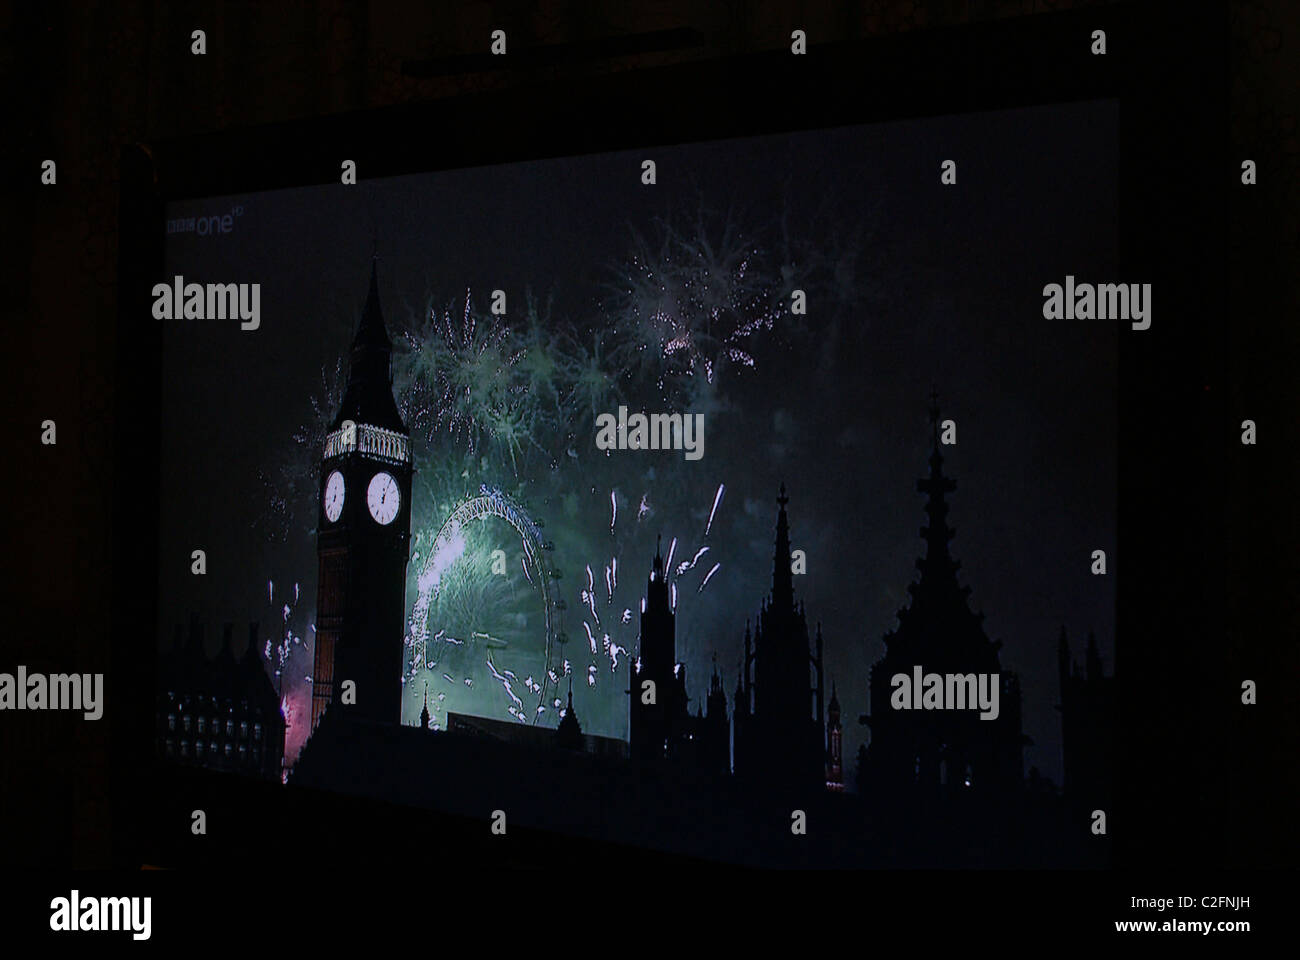 New year's fireworks on tele - Stock Image